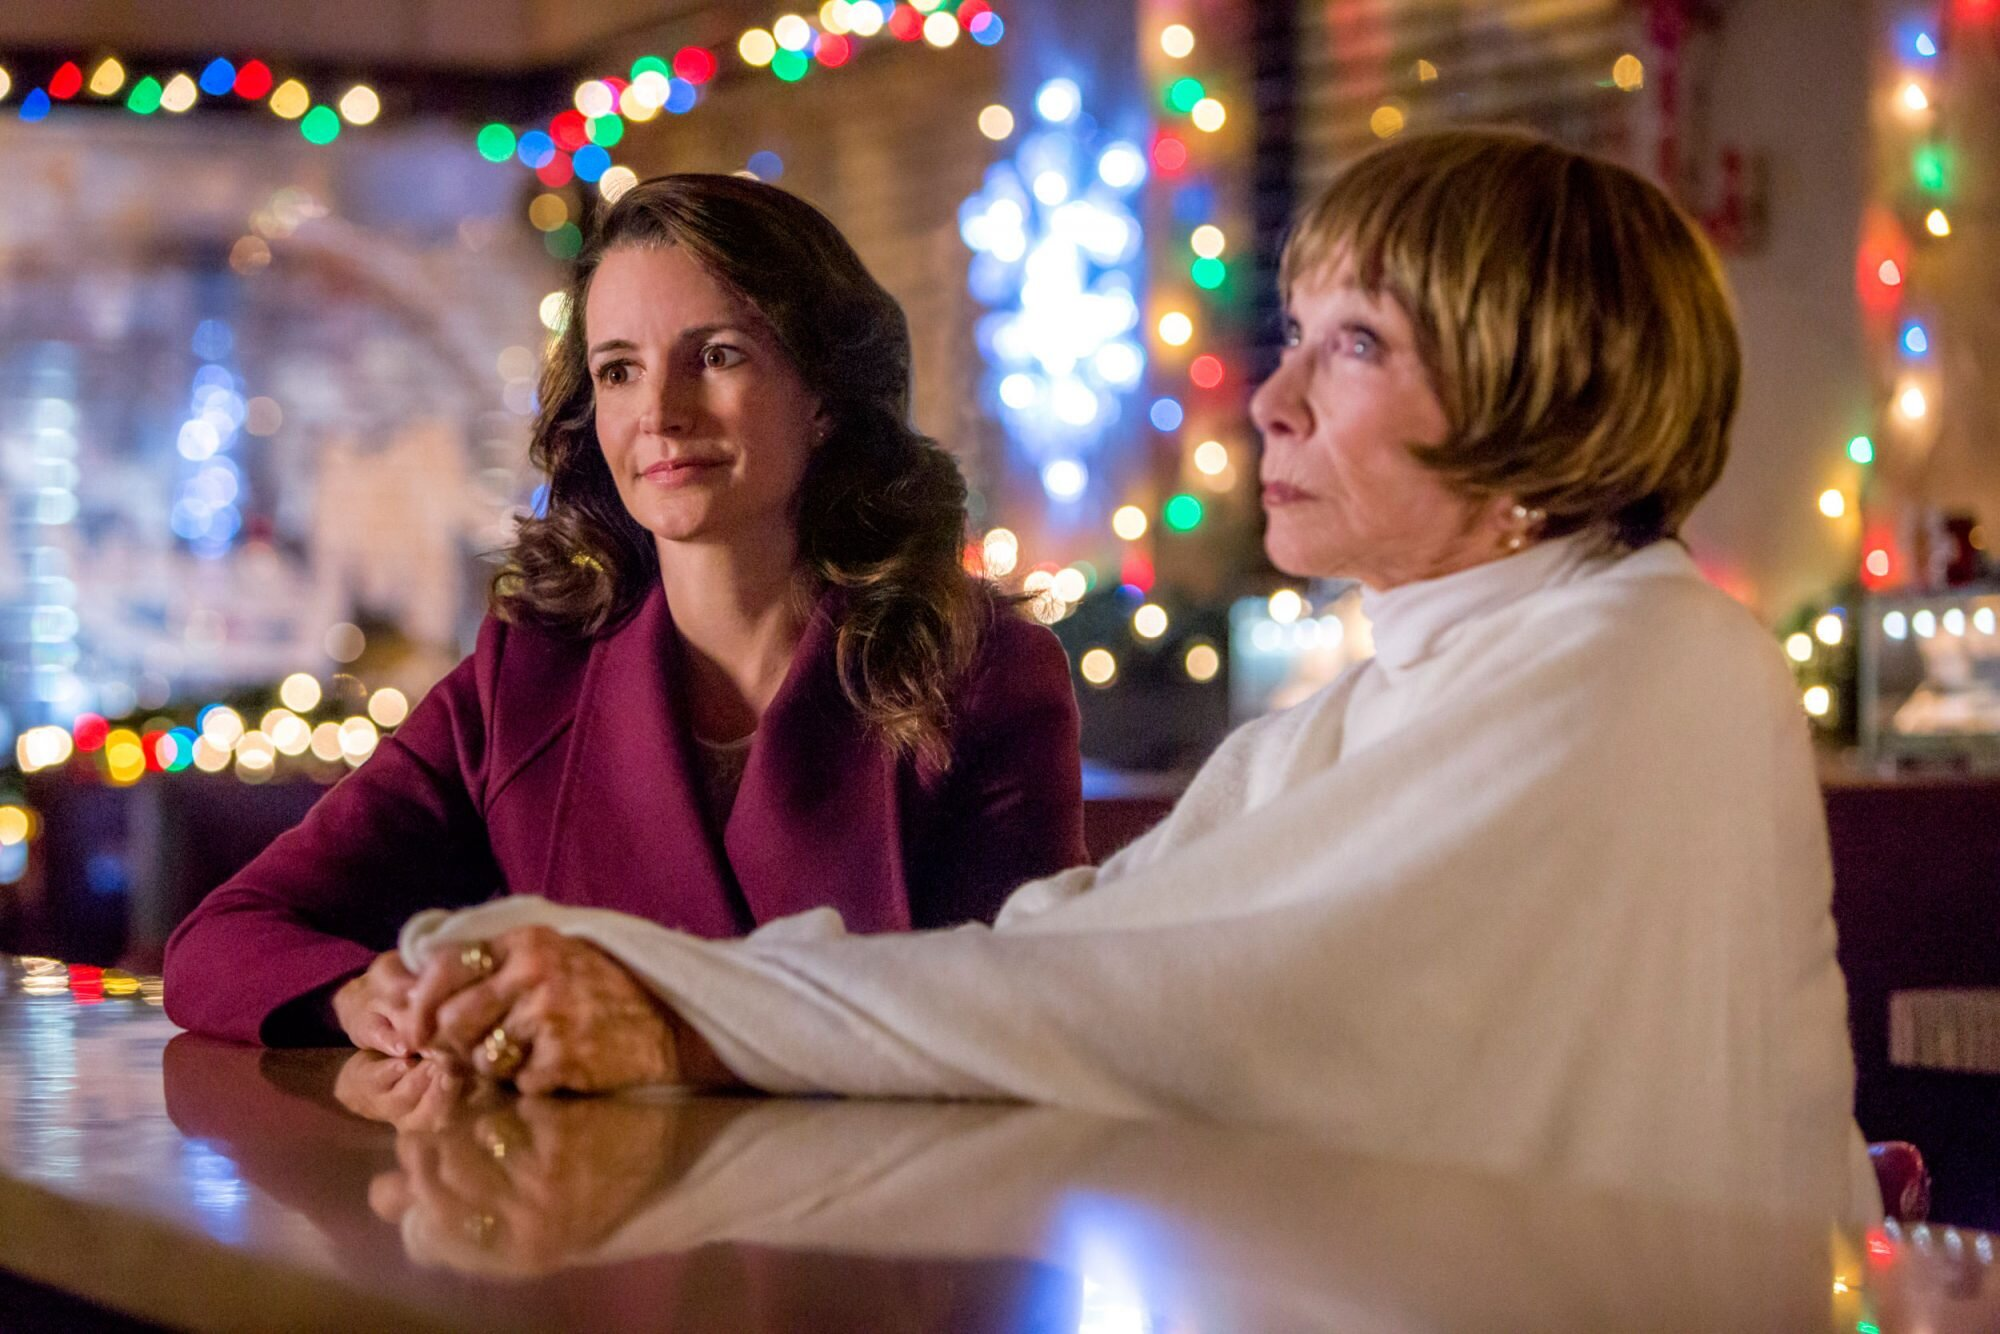 The Top 15 Most-Watched Hallmark Christmas Movies, According